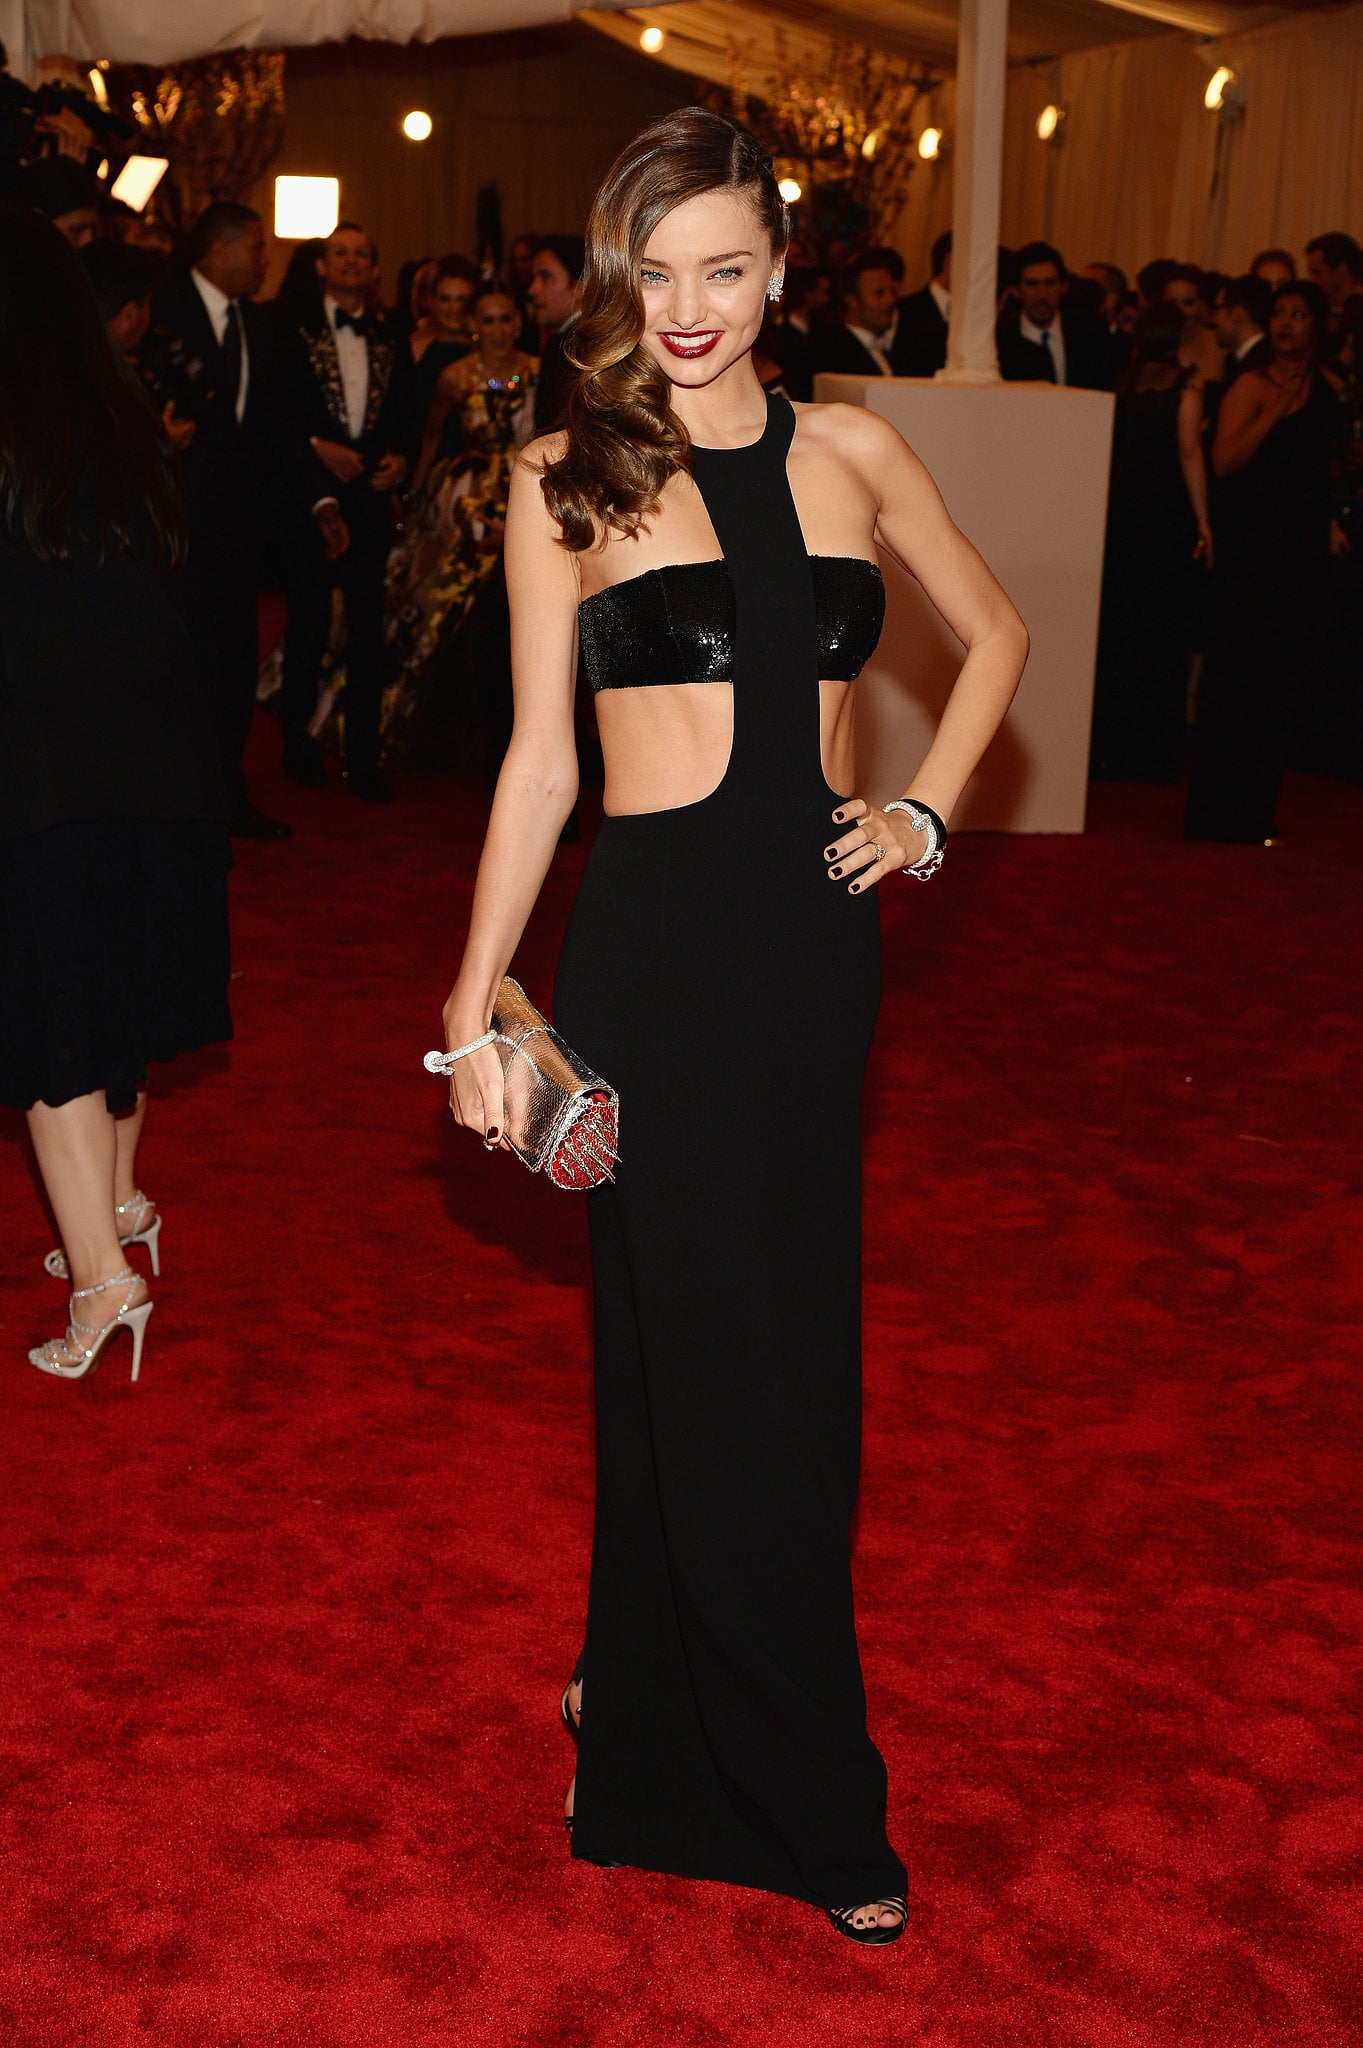 Miranda Kerr at the 2013 Met Gala